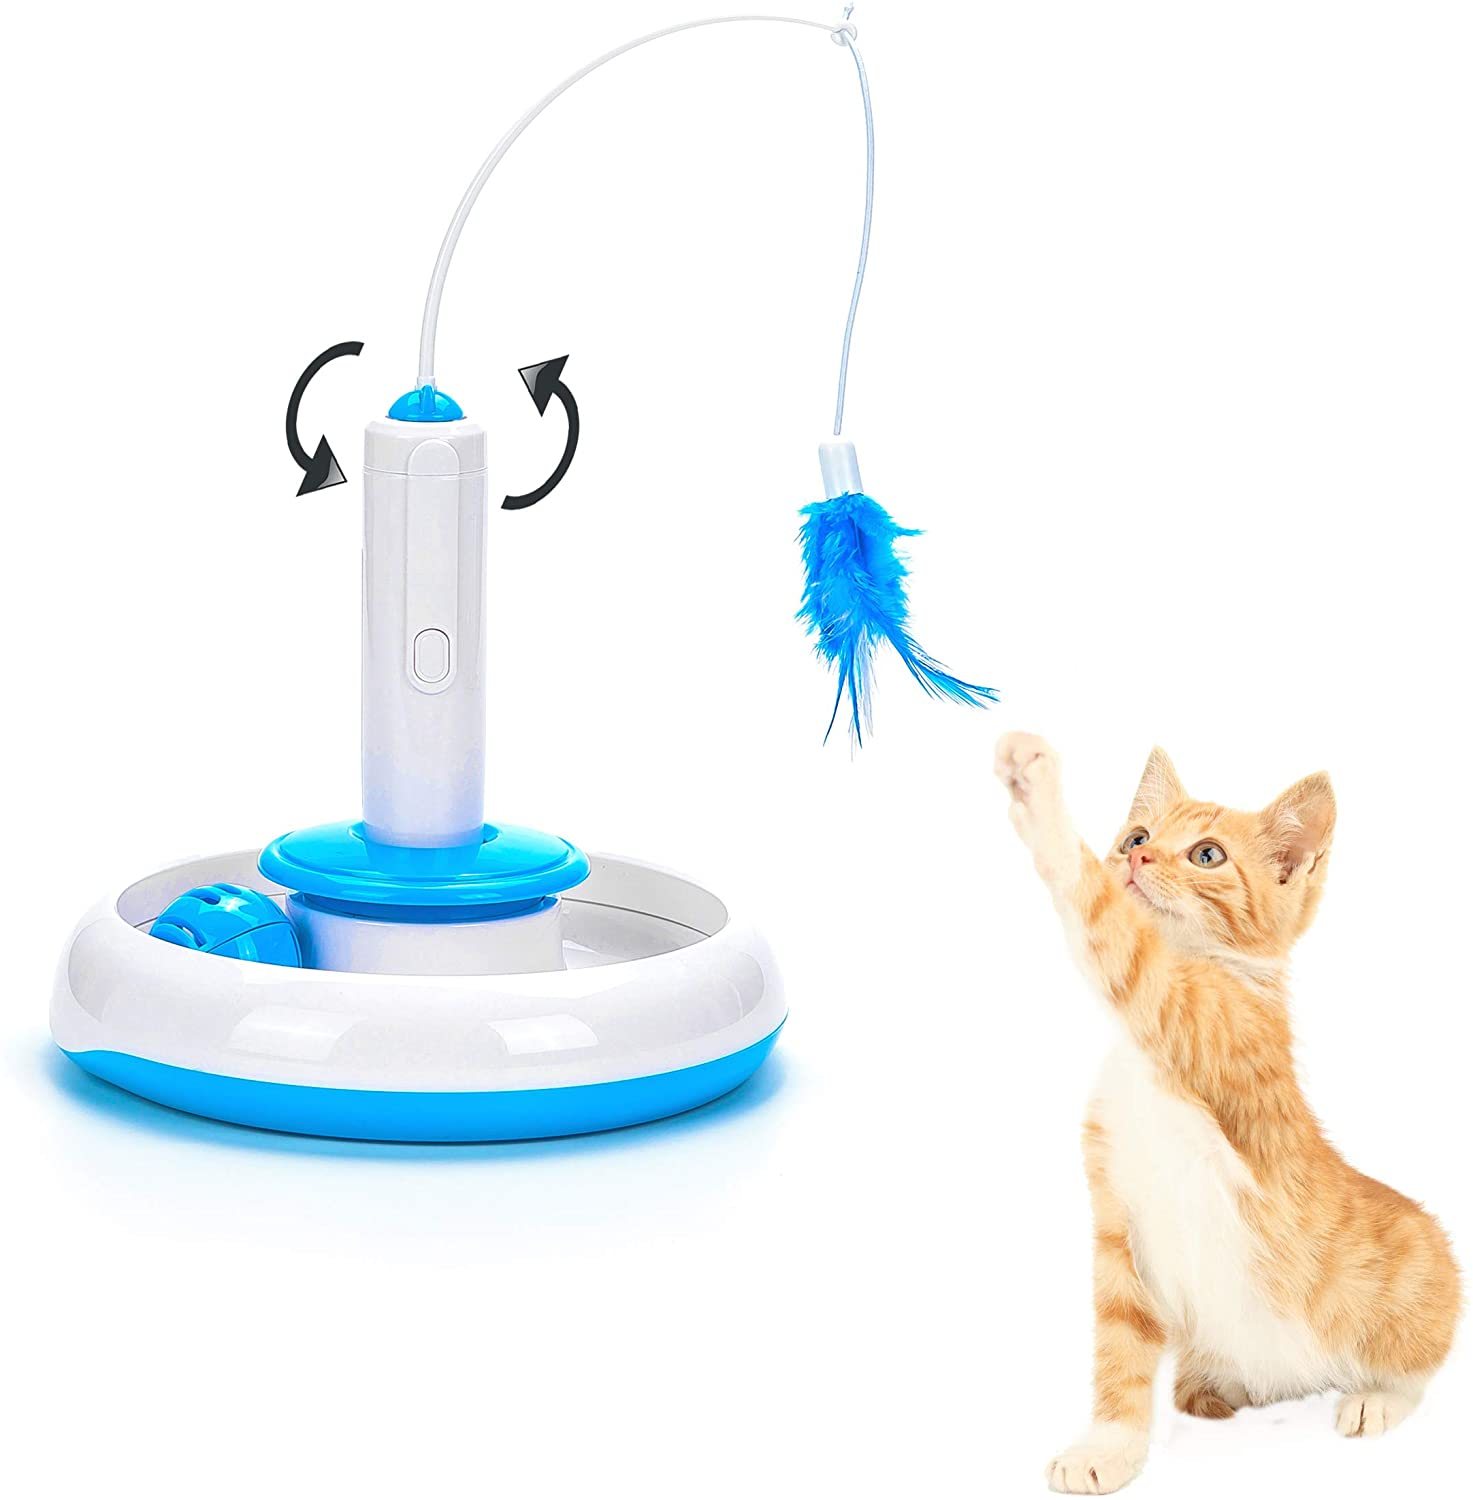 Vealind Electric Interactive Cat Toys for Indoor Cats with 360 Degree Auto Rotating Feather & Ringing Bell Ball House Teaser Toy